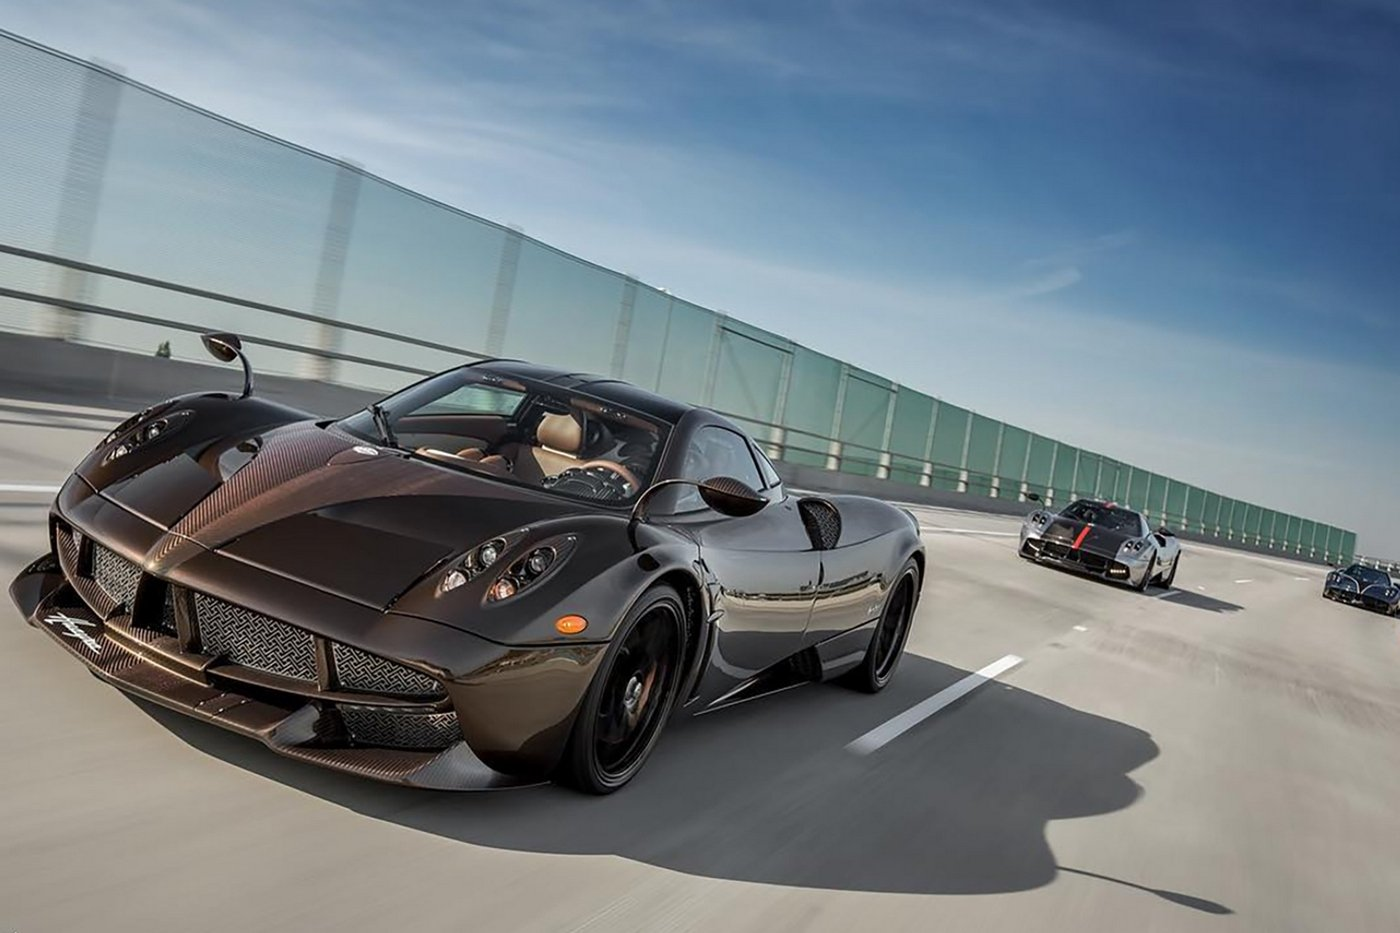 Top 5 things you did not know about Pagani cars